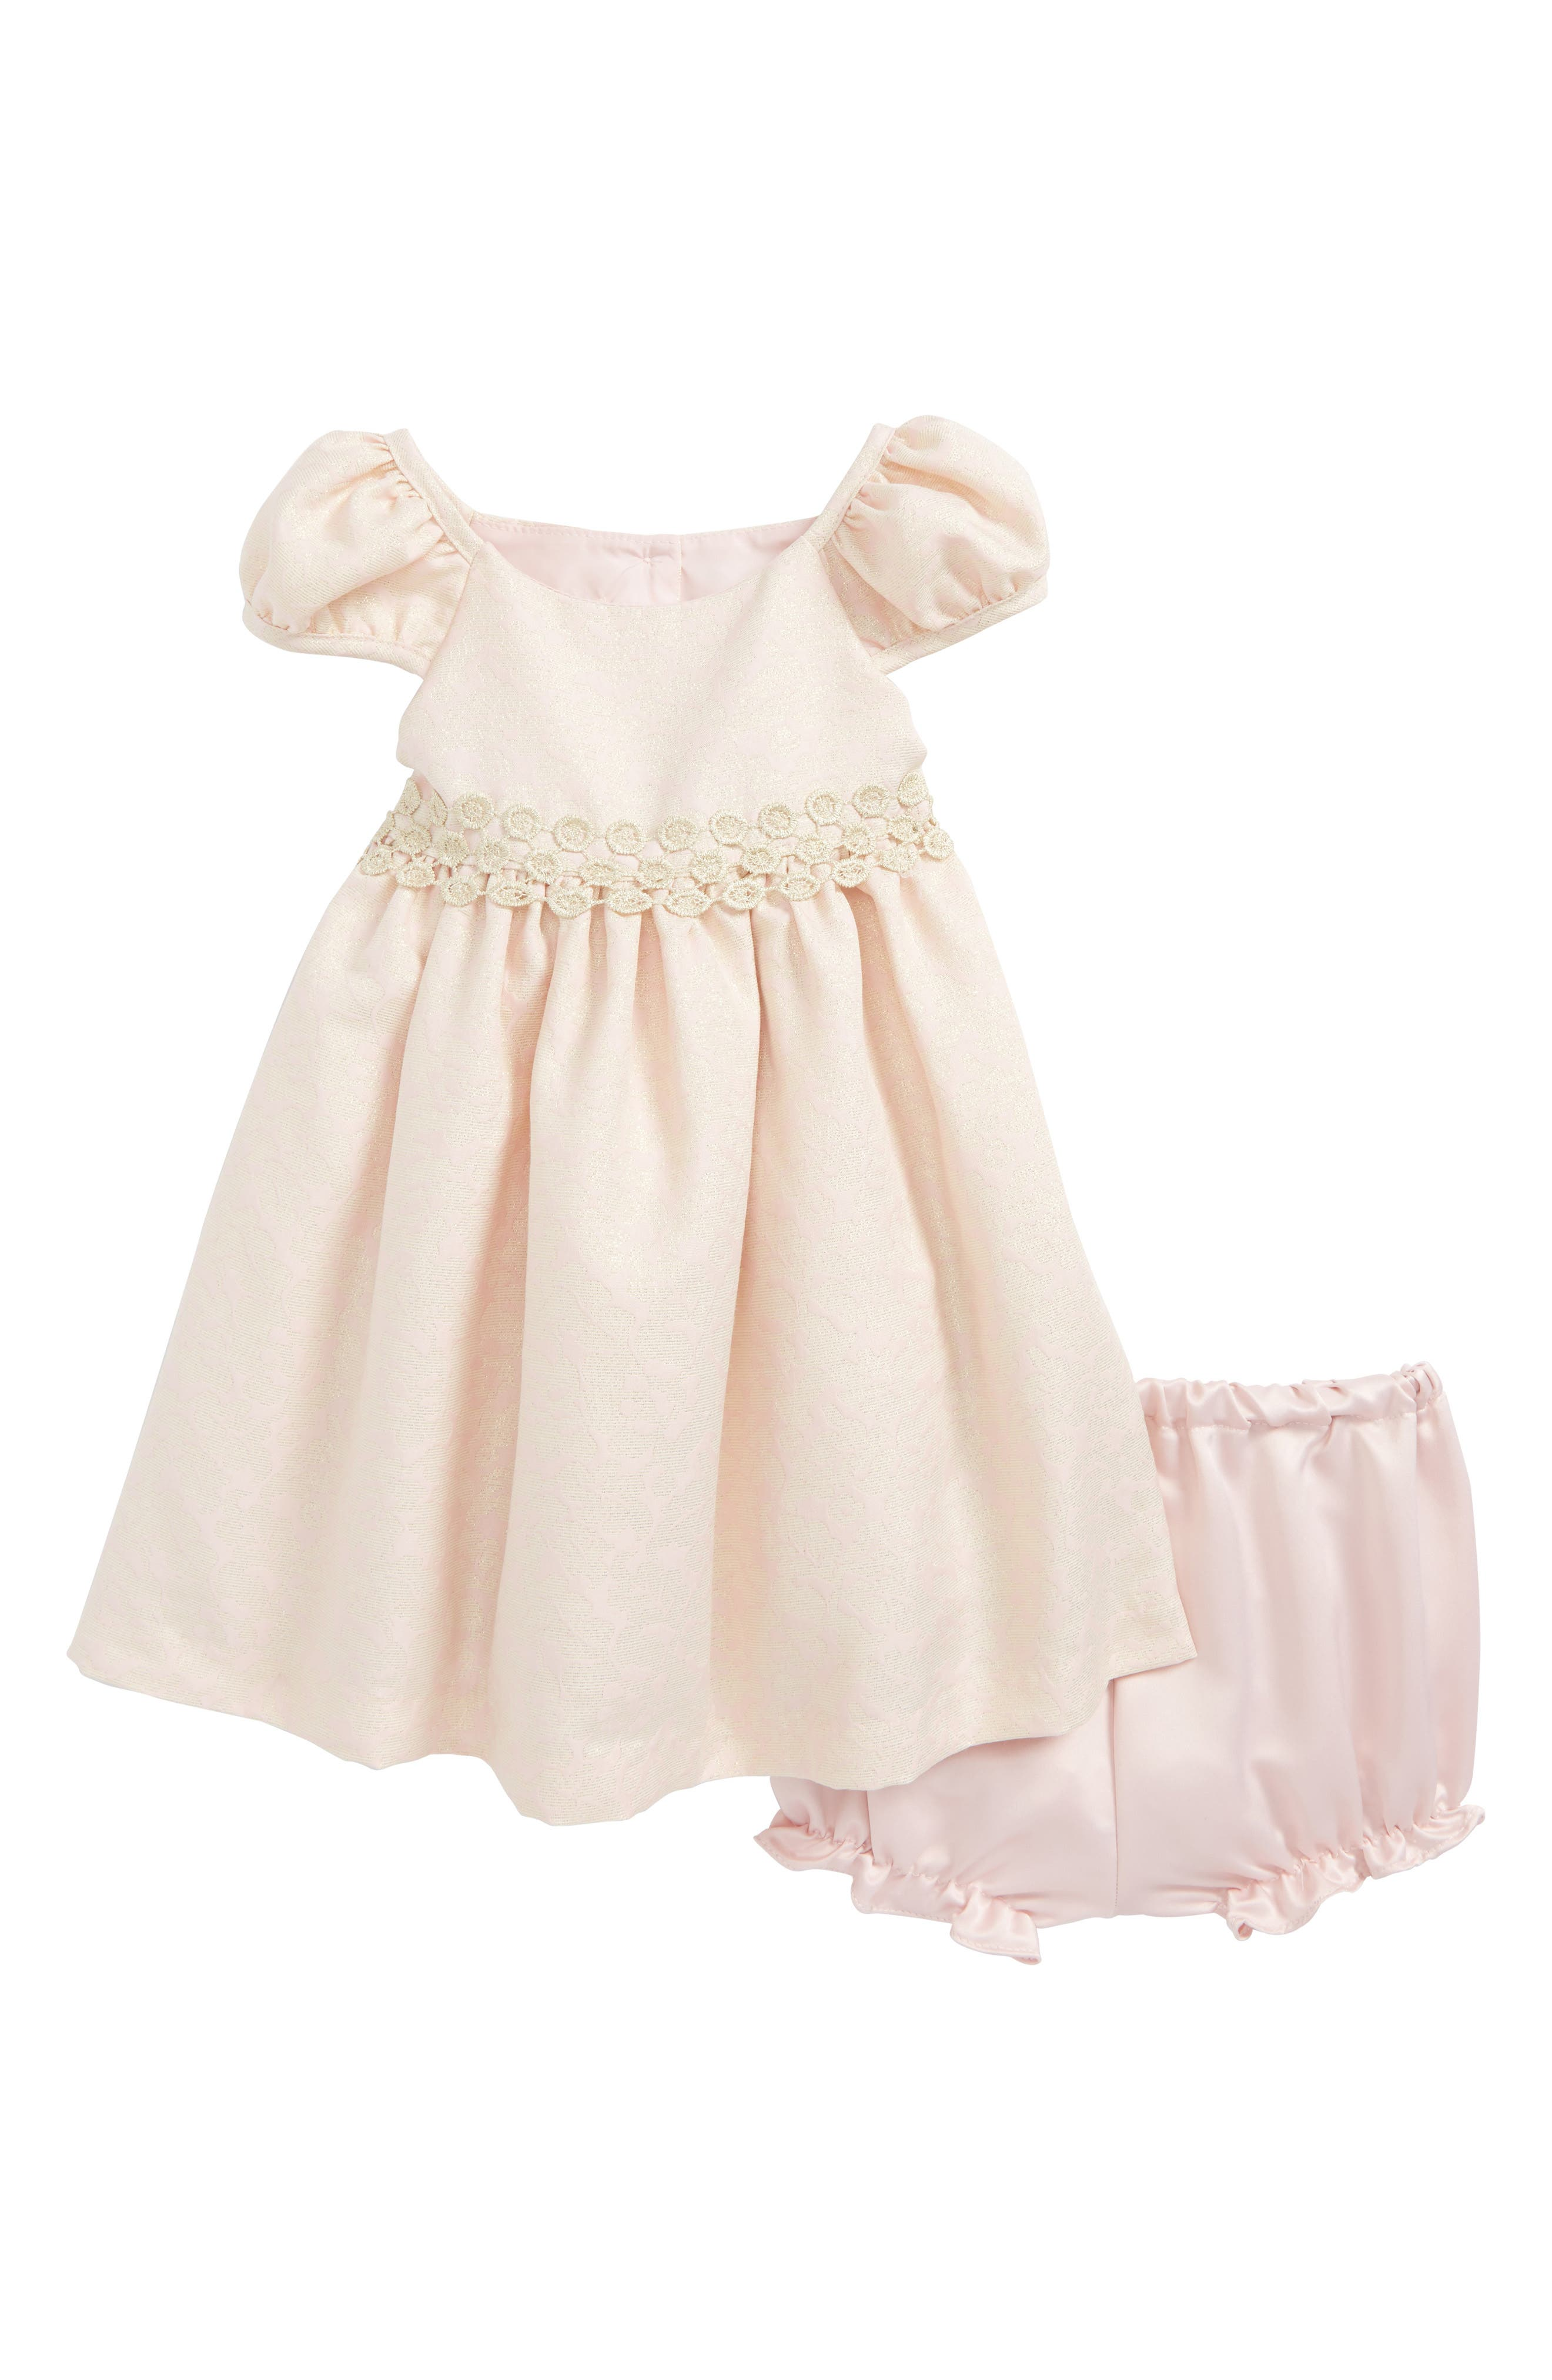 Why is dr bailey baby white dresses